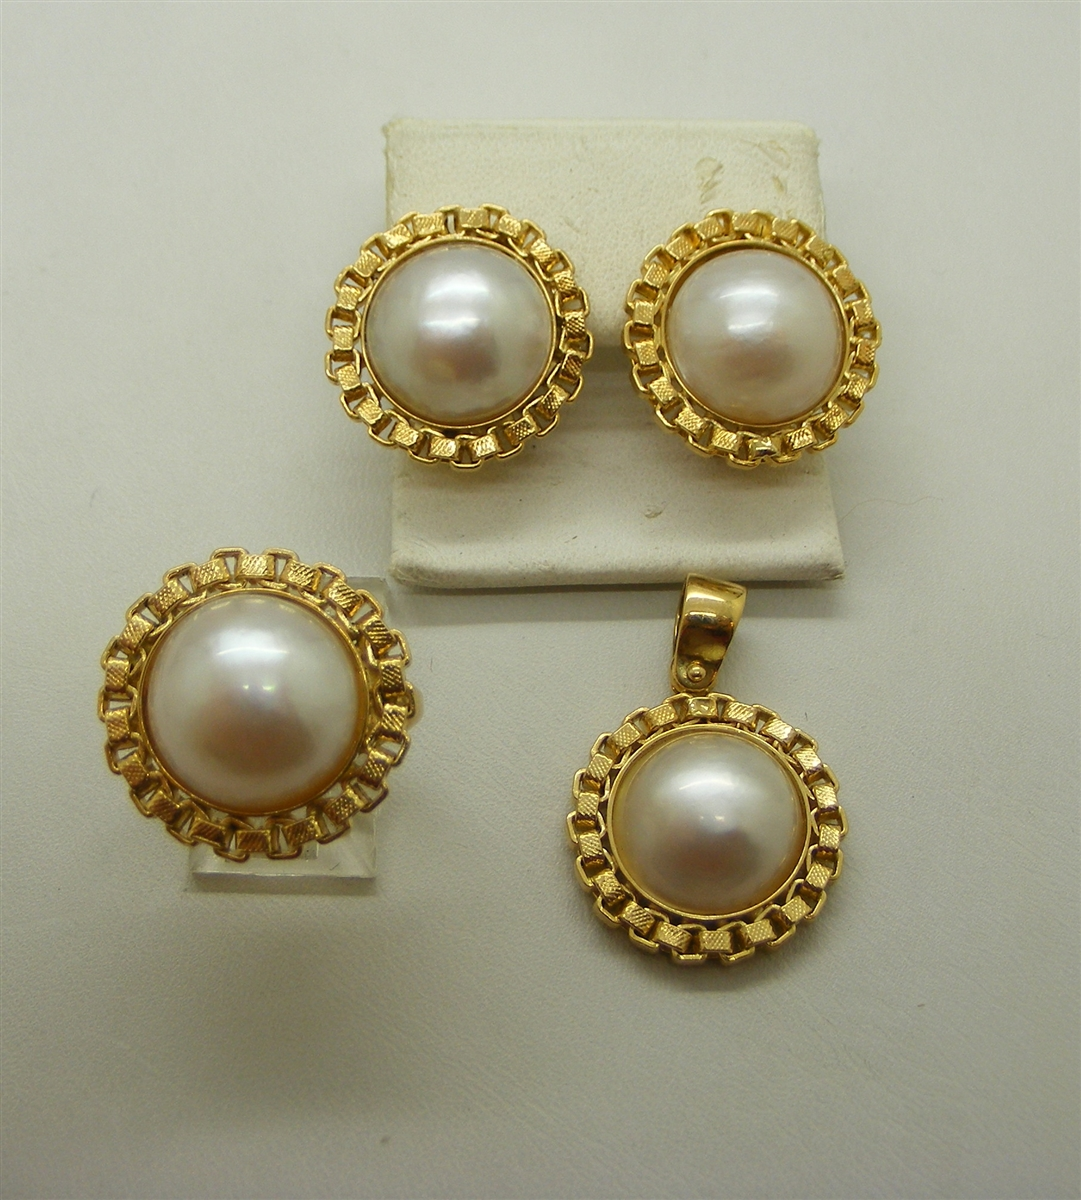 Designer Piece 18 K Yellow Gold Mabe Pearl Jewelry Set Ring Earrings Pendant